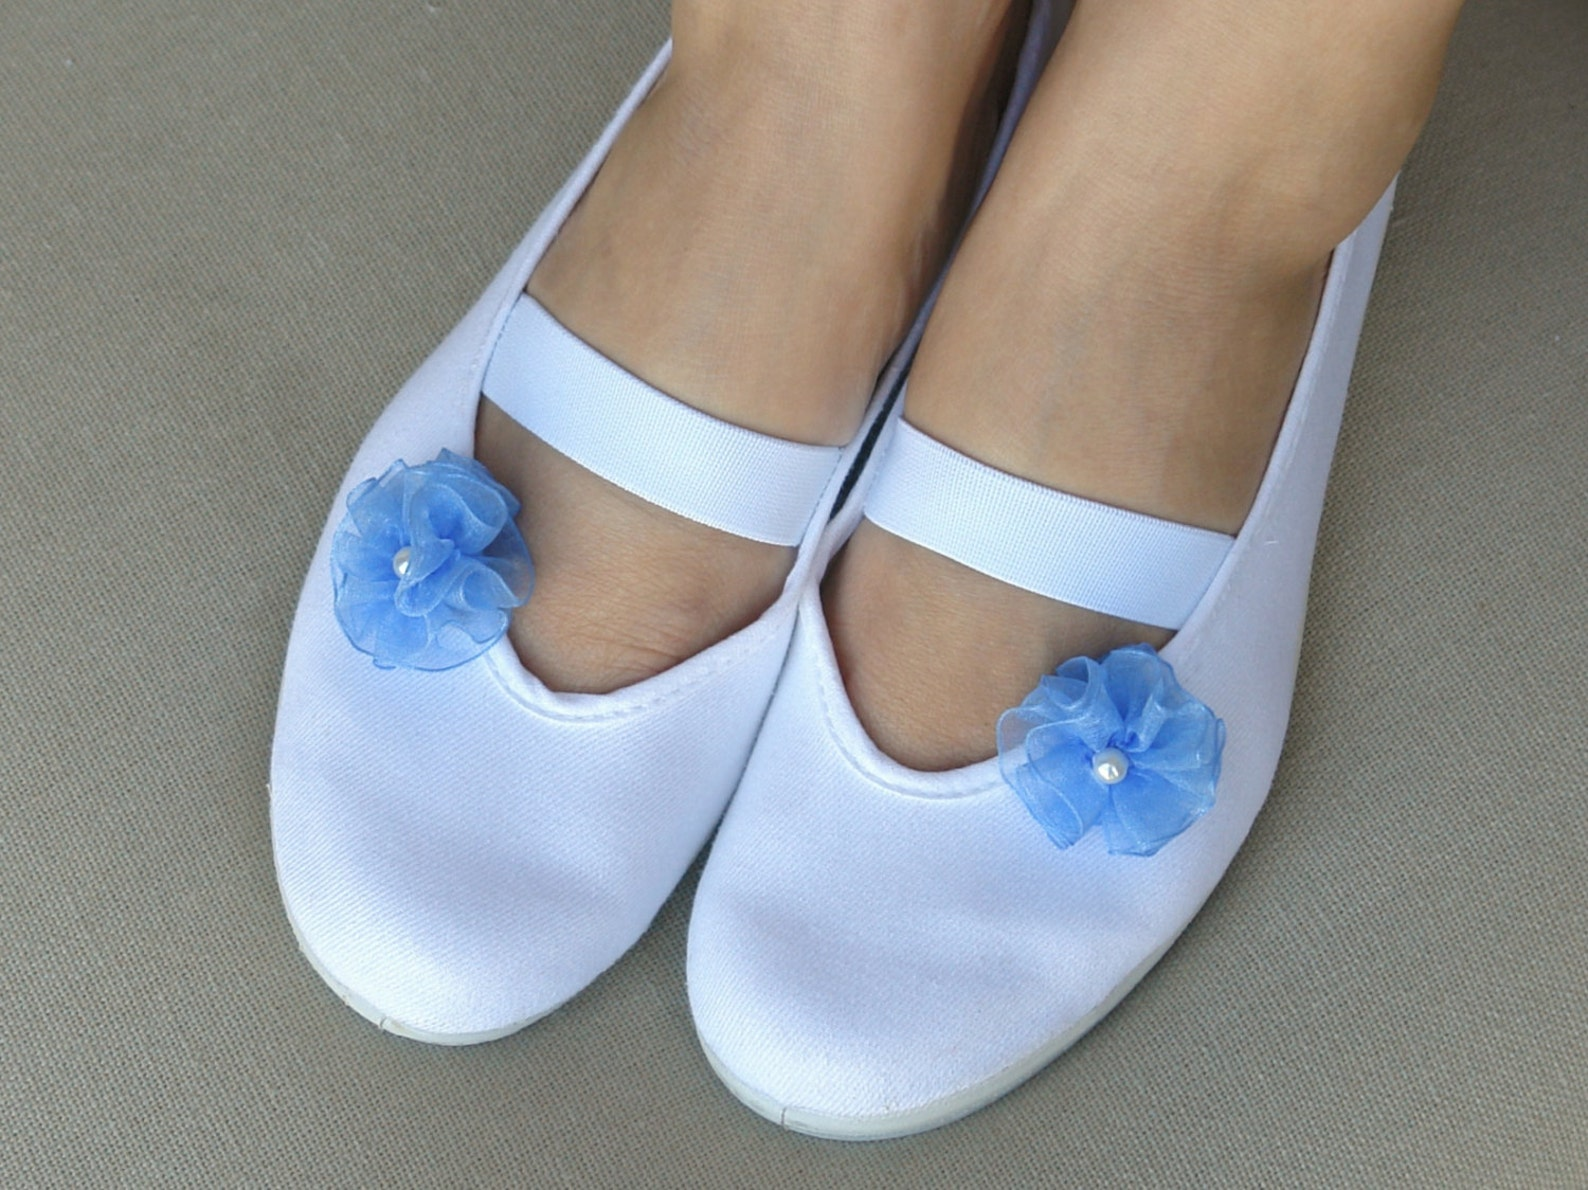 girls shoes,bridal flats,mary jane shoes,white cotton romantic shoes,flower girl shoes,wedding ballet flats,bridal shoes,summer